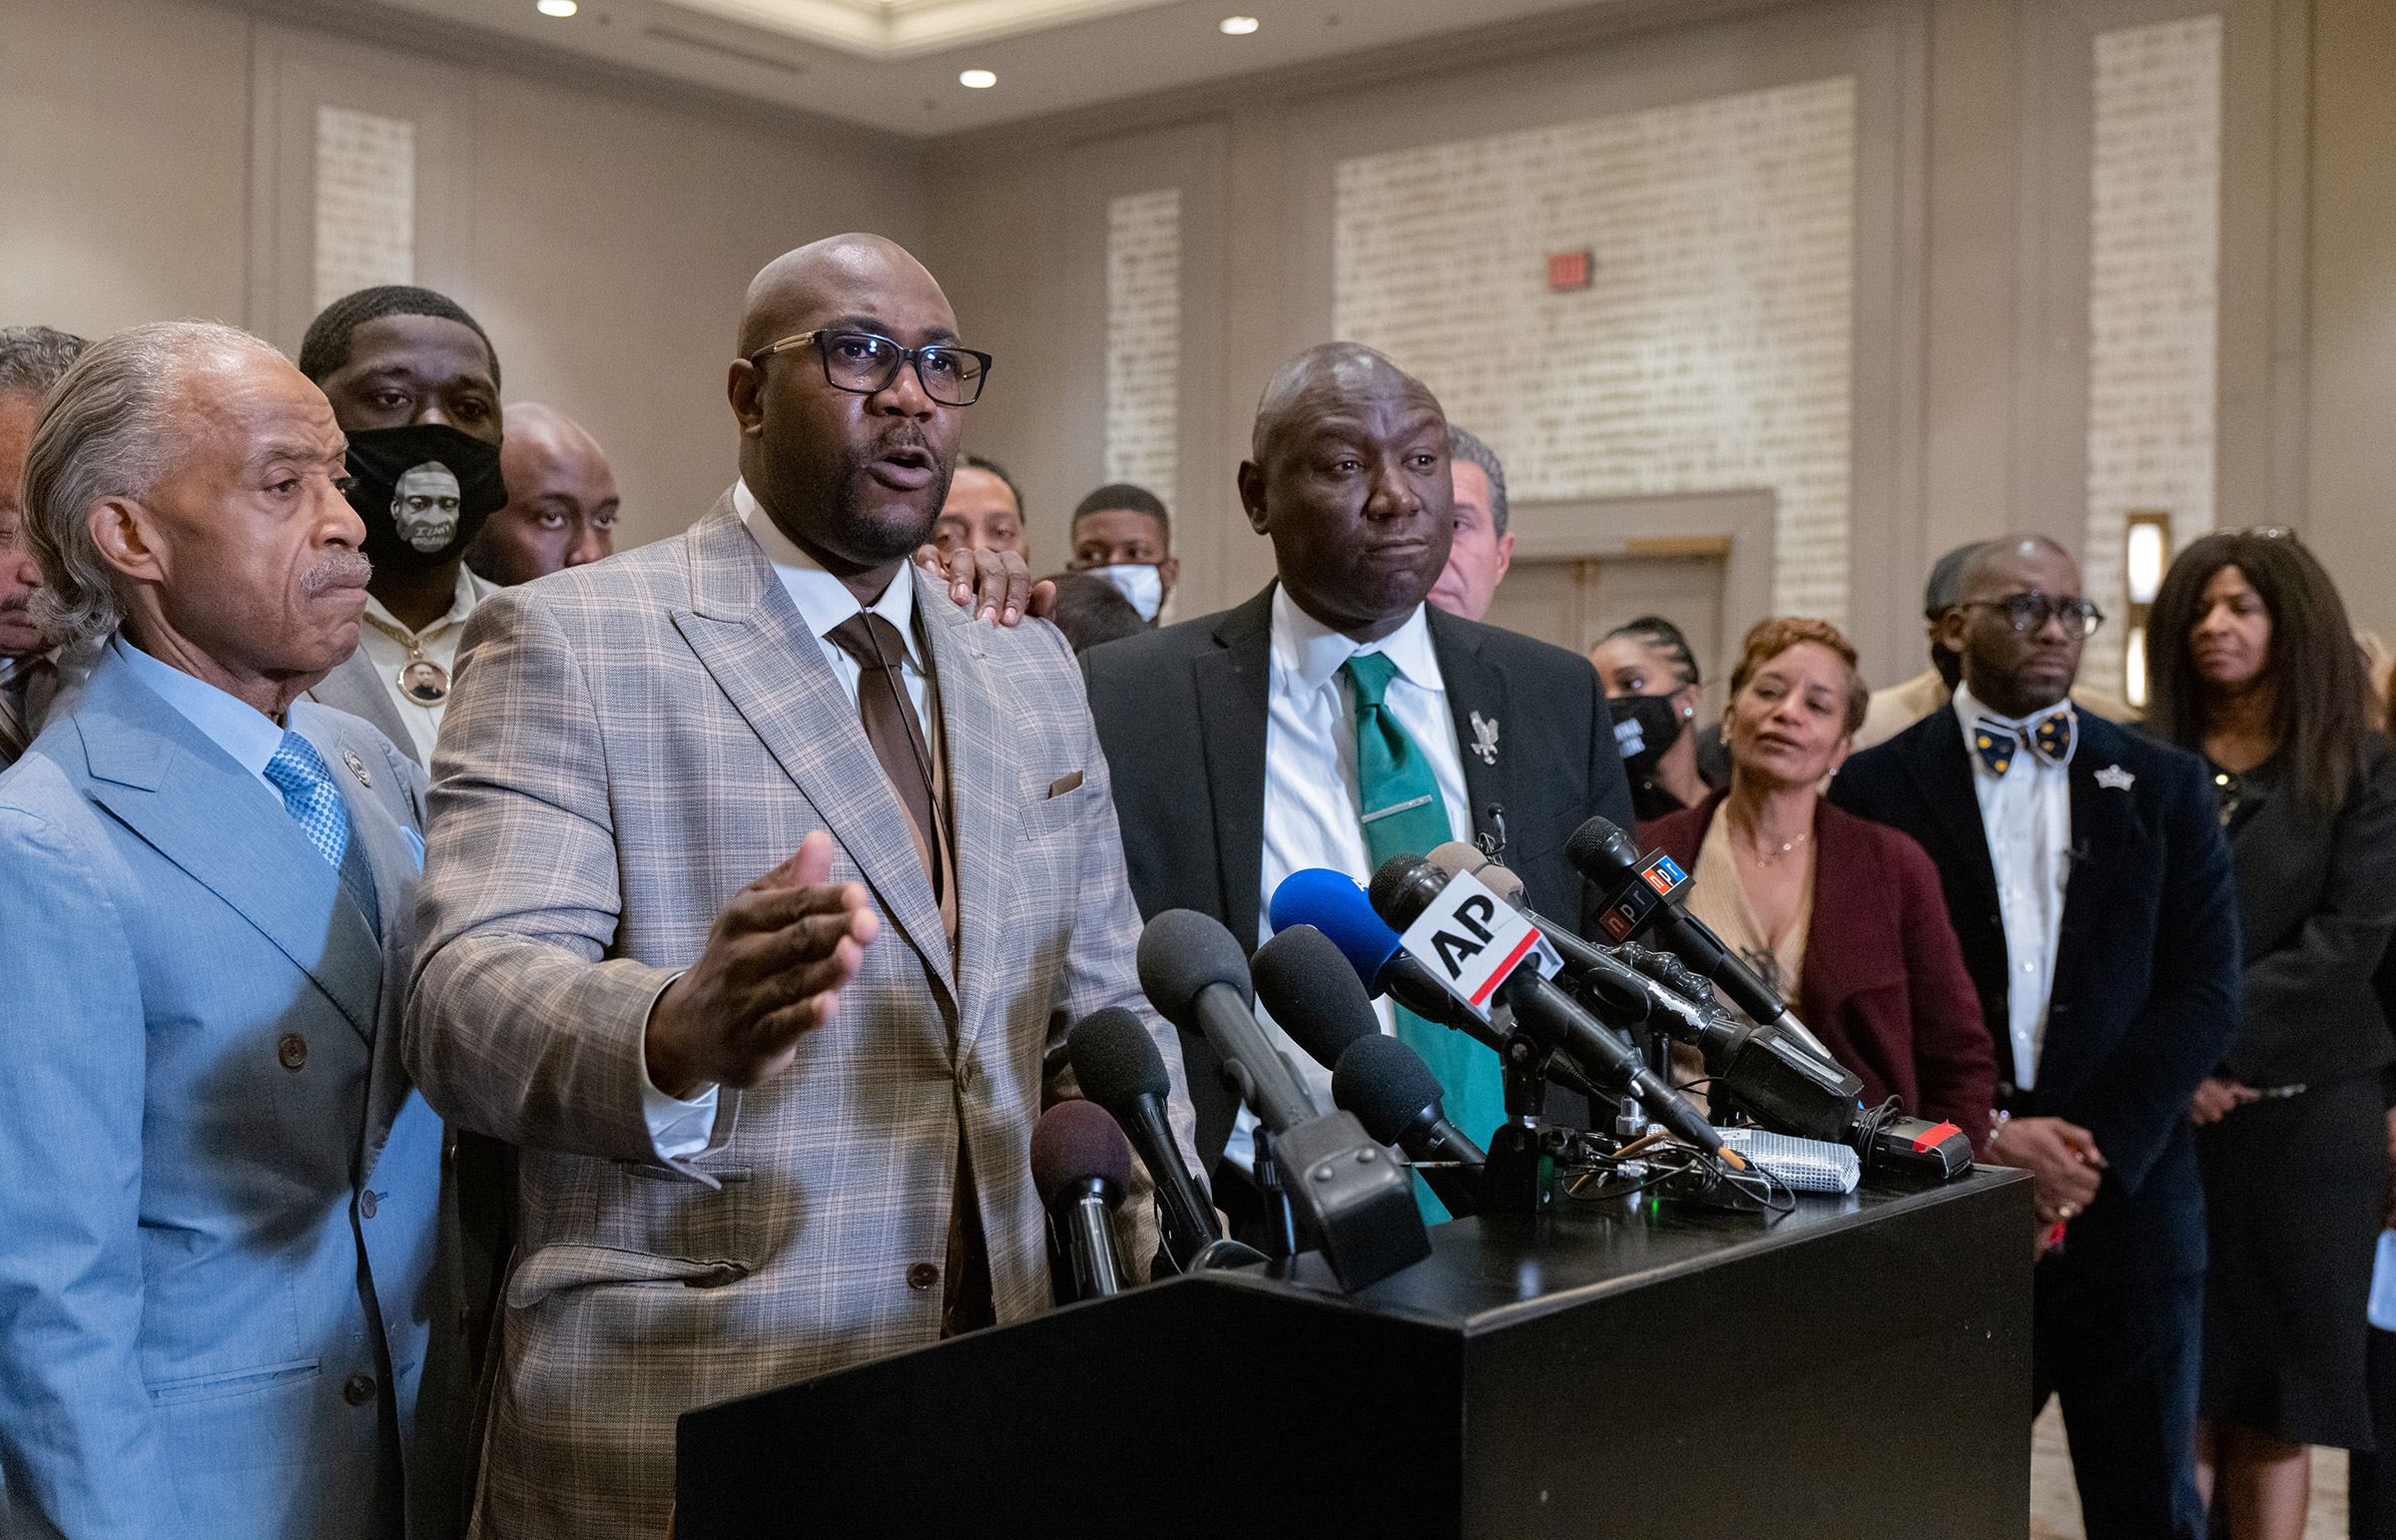 George Floyd's brother Philonise Floyd is flanked by the Rev. Al Sharpton, left, and Attorney Ben Crump during a news conference after the verdicts were announced.